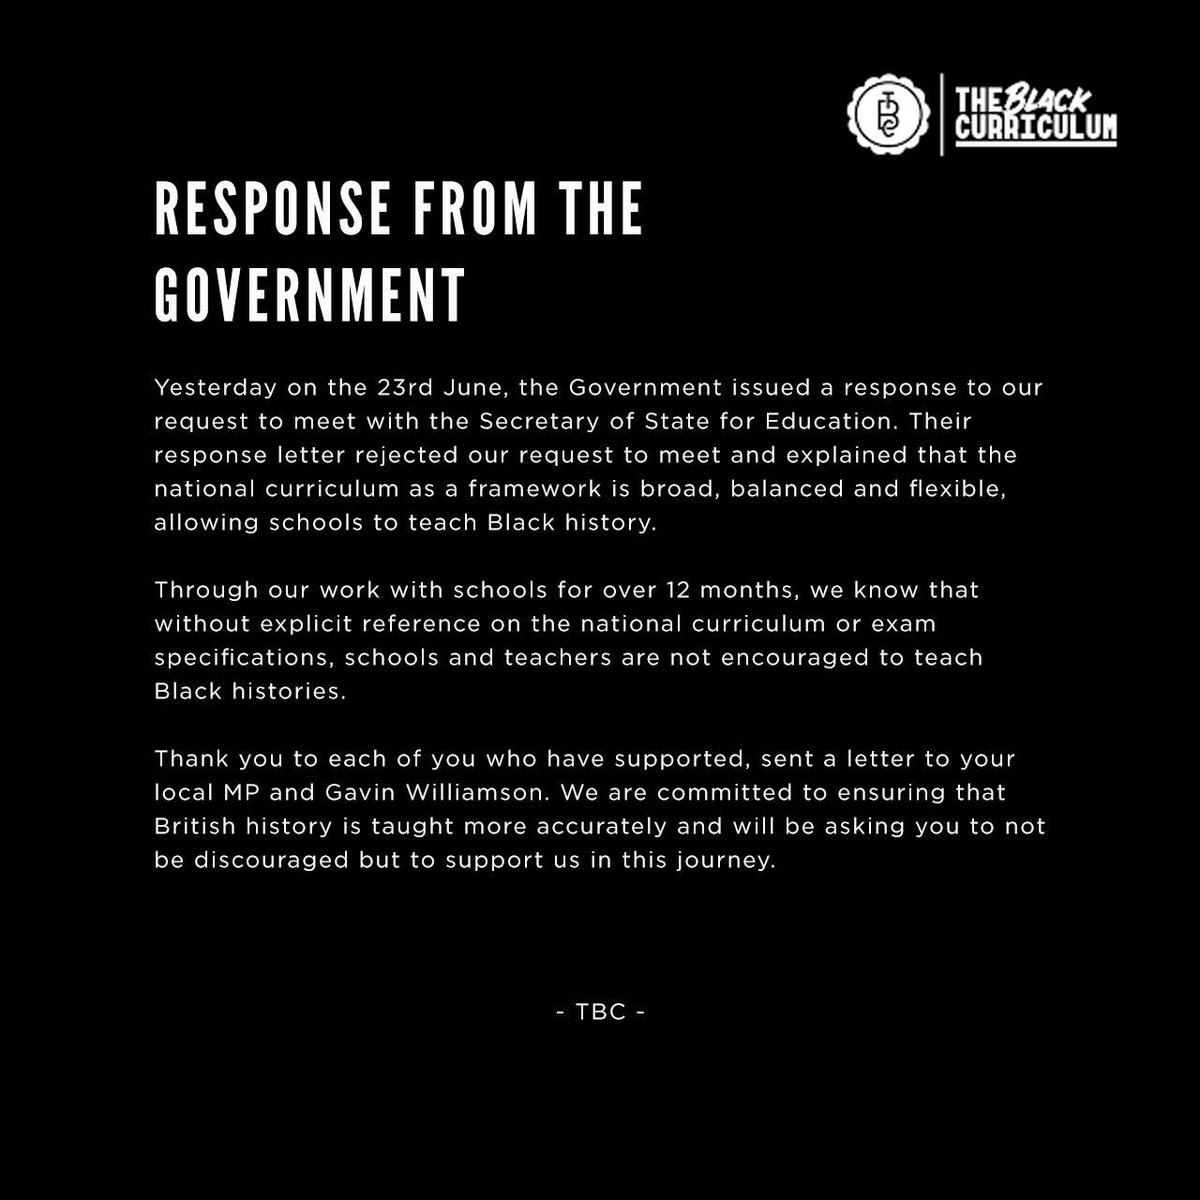 Despite a disappointing response from the govt, we will continue to push for the mandatory inclusion of black histories in schools. Thank you for all your support so far! Here is our statement on the govts response & 3 ways you can continue to support us #TBH365